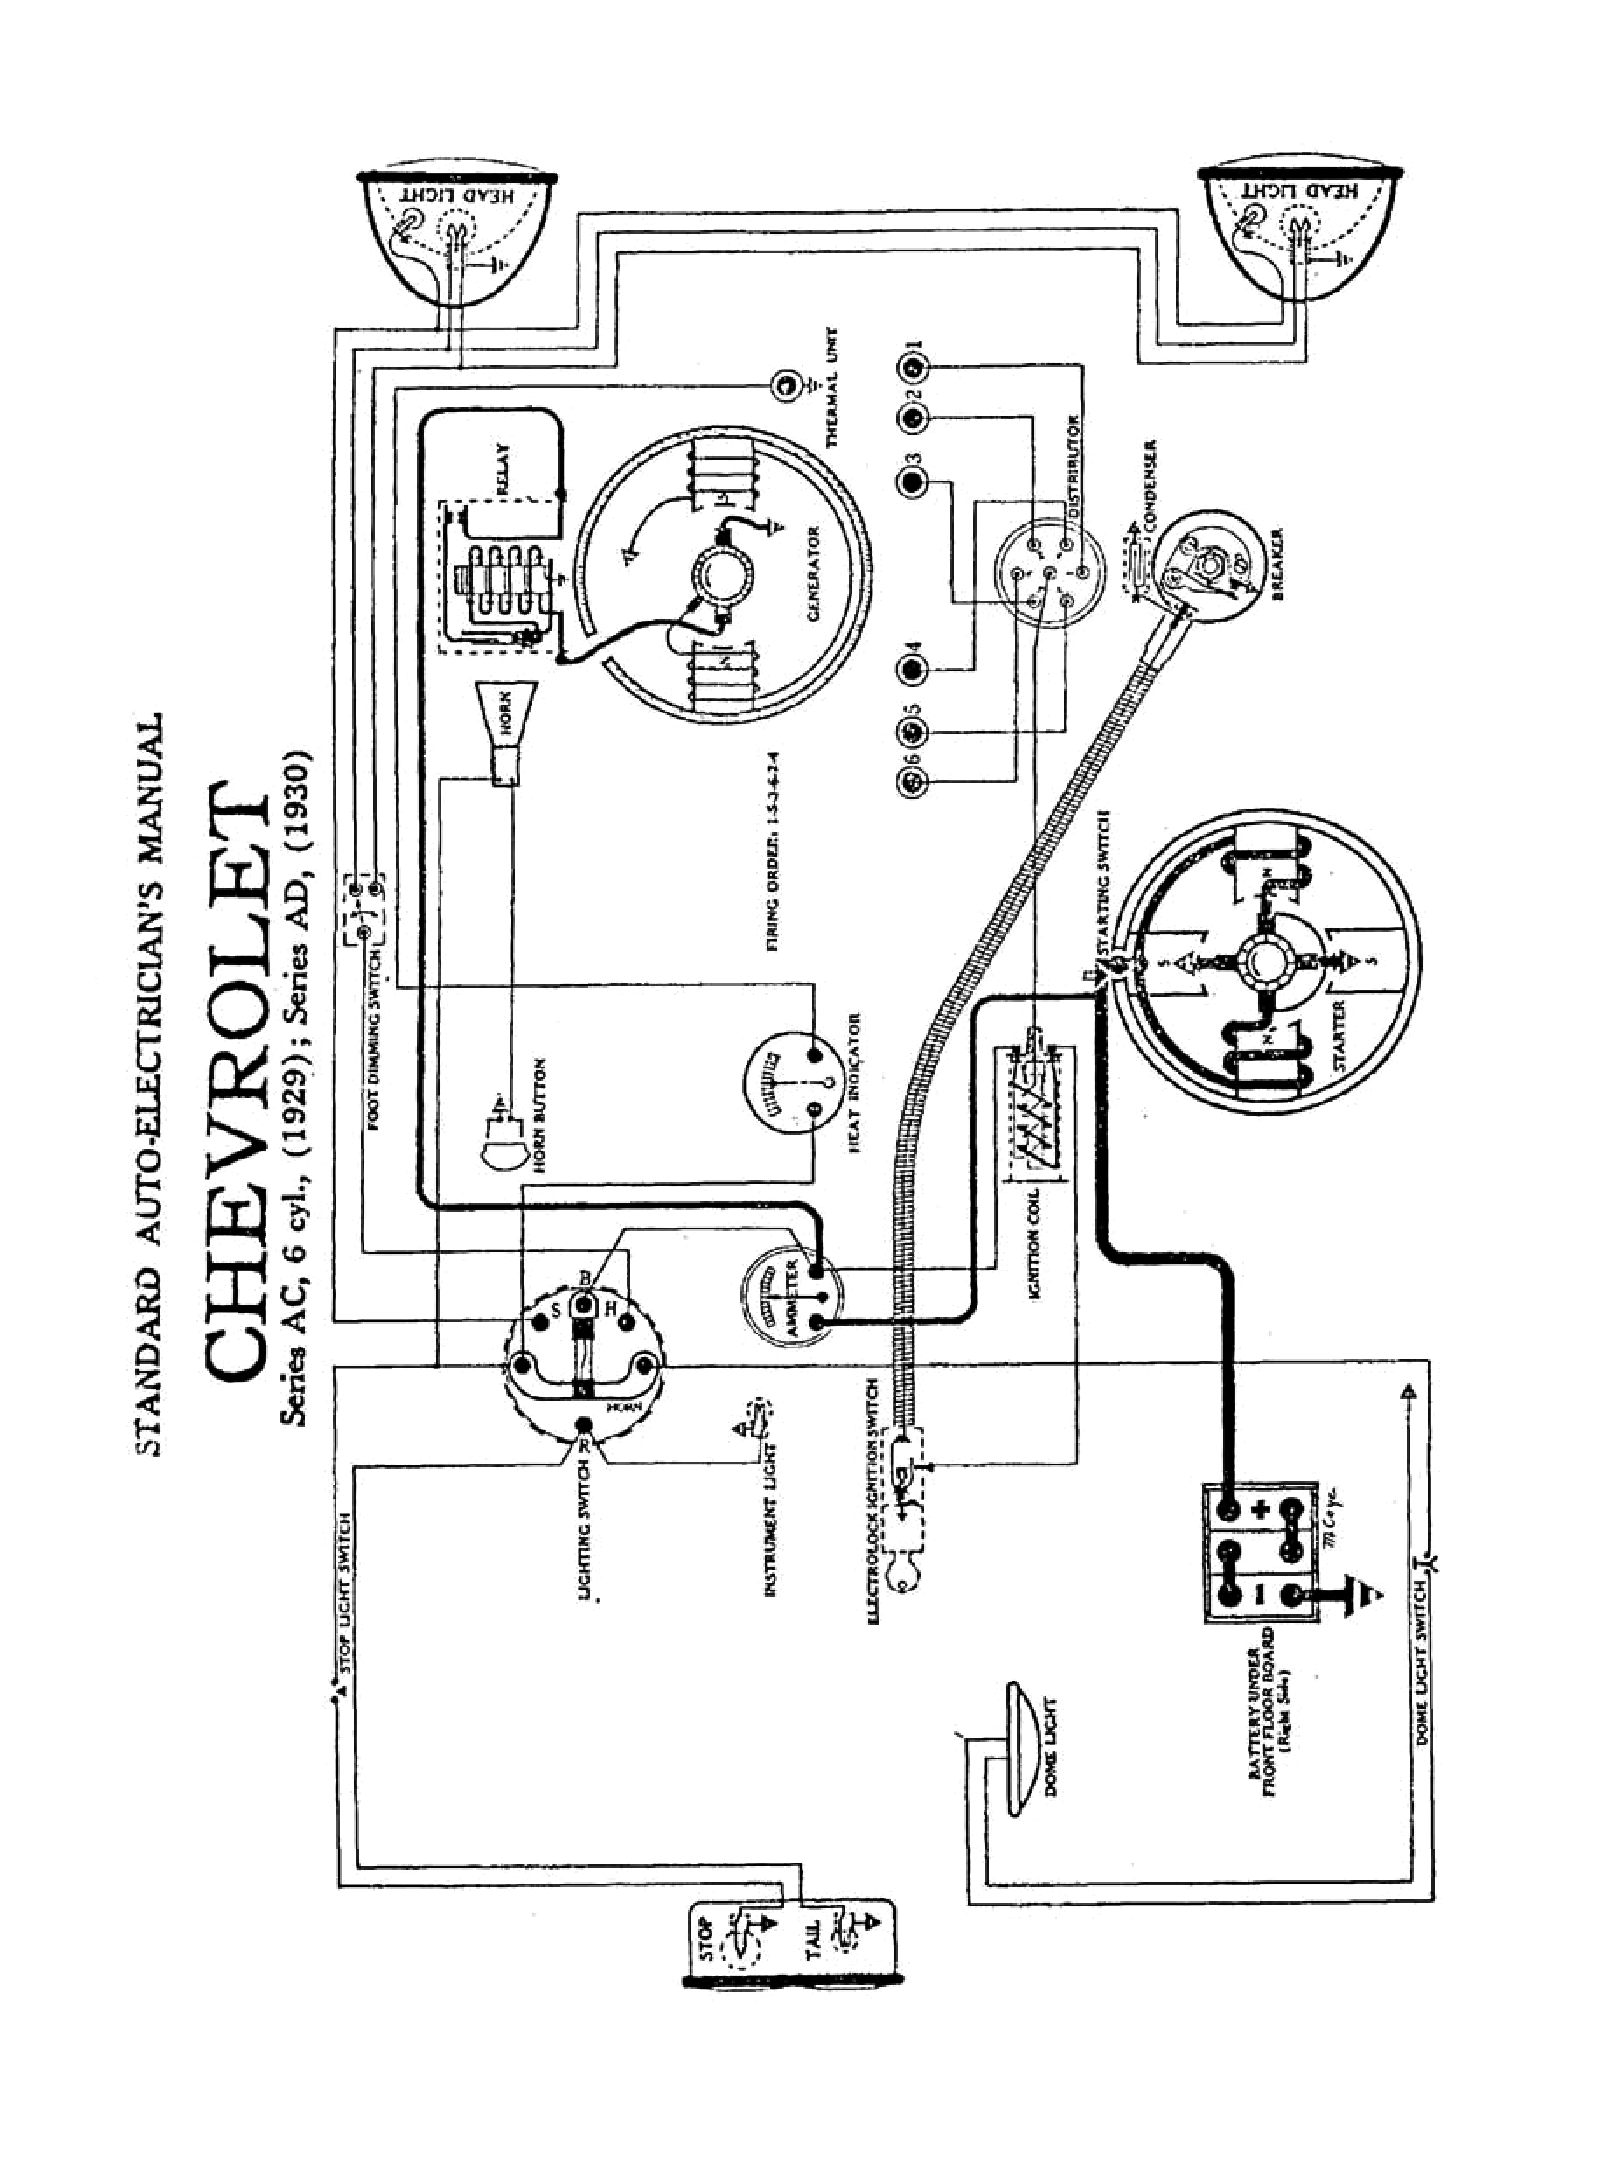 2930wiring chevy wiring diagrams how to read truck wiring diagrams at cos-gaming.co